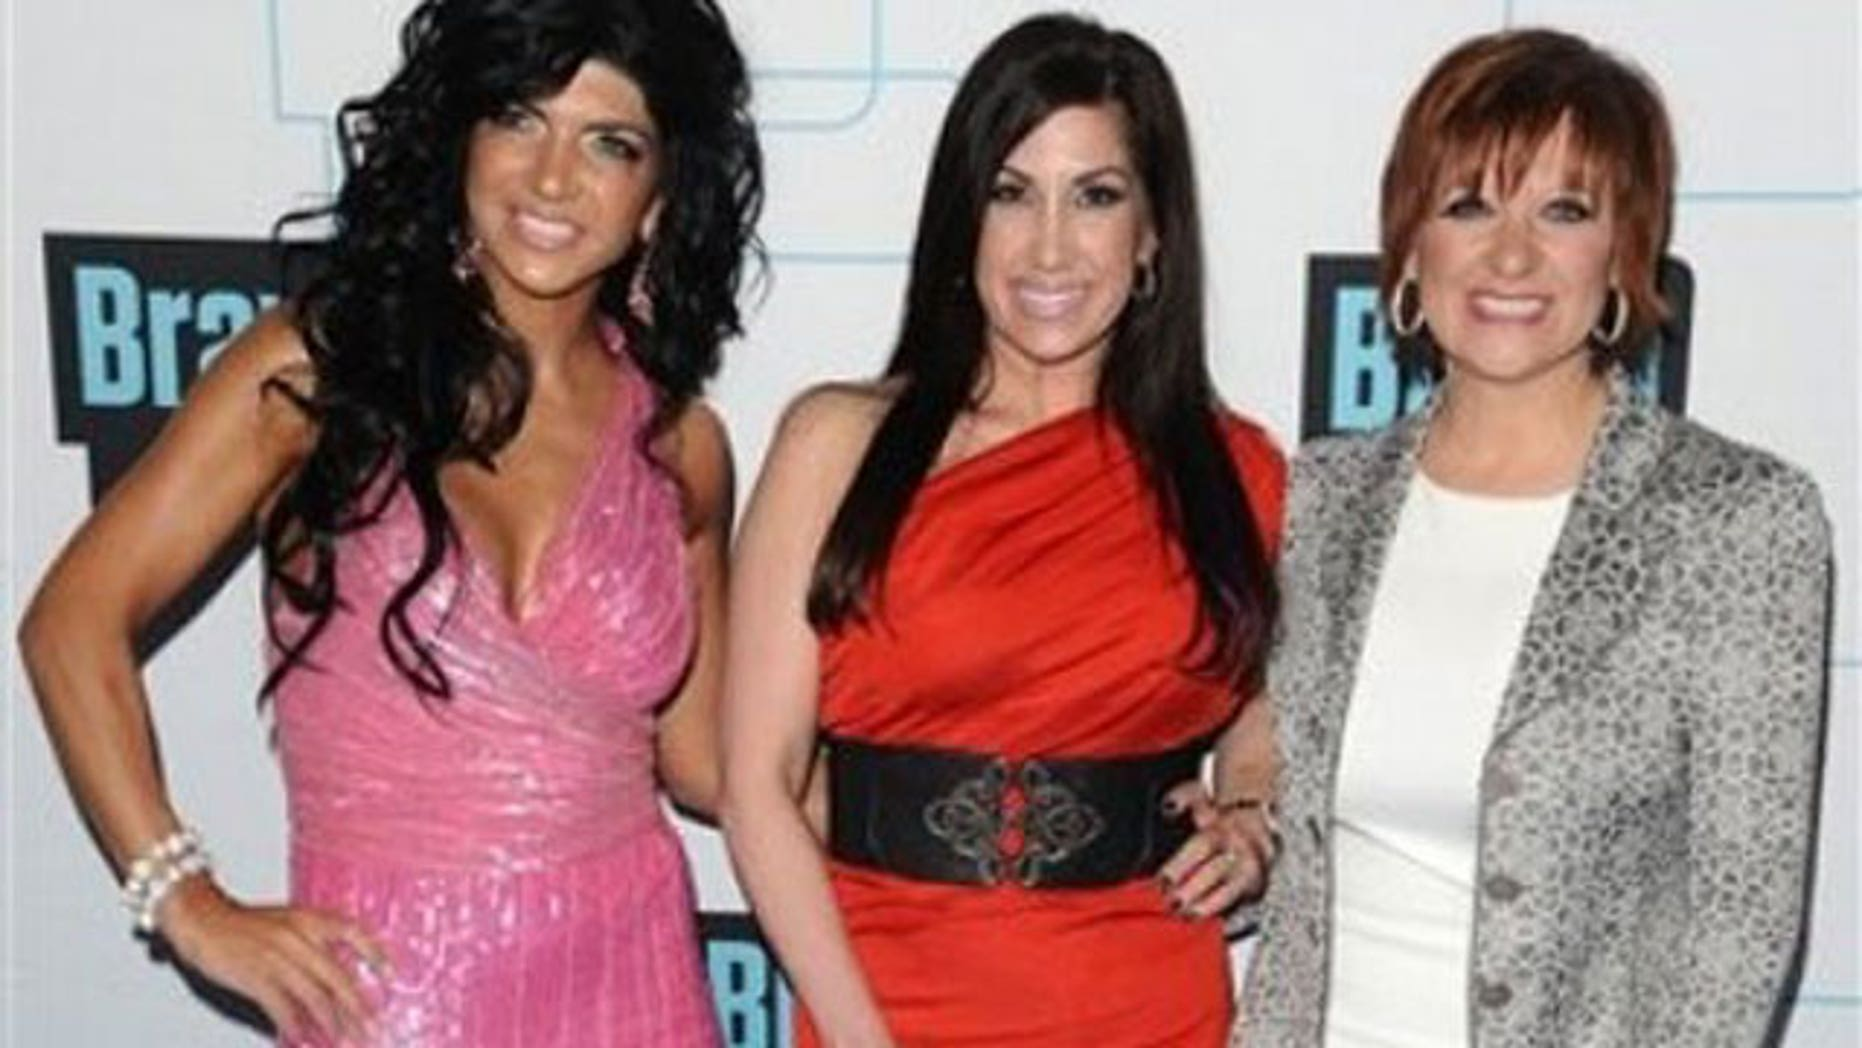 'Real Housewives of New Jersey' Teresa Giudice, Jacqueline Laurita and Caroline Manzo. (AP)